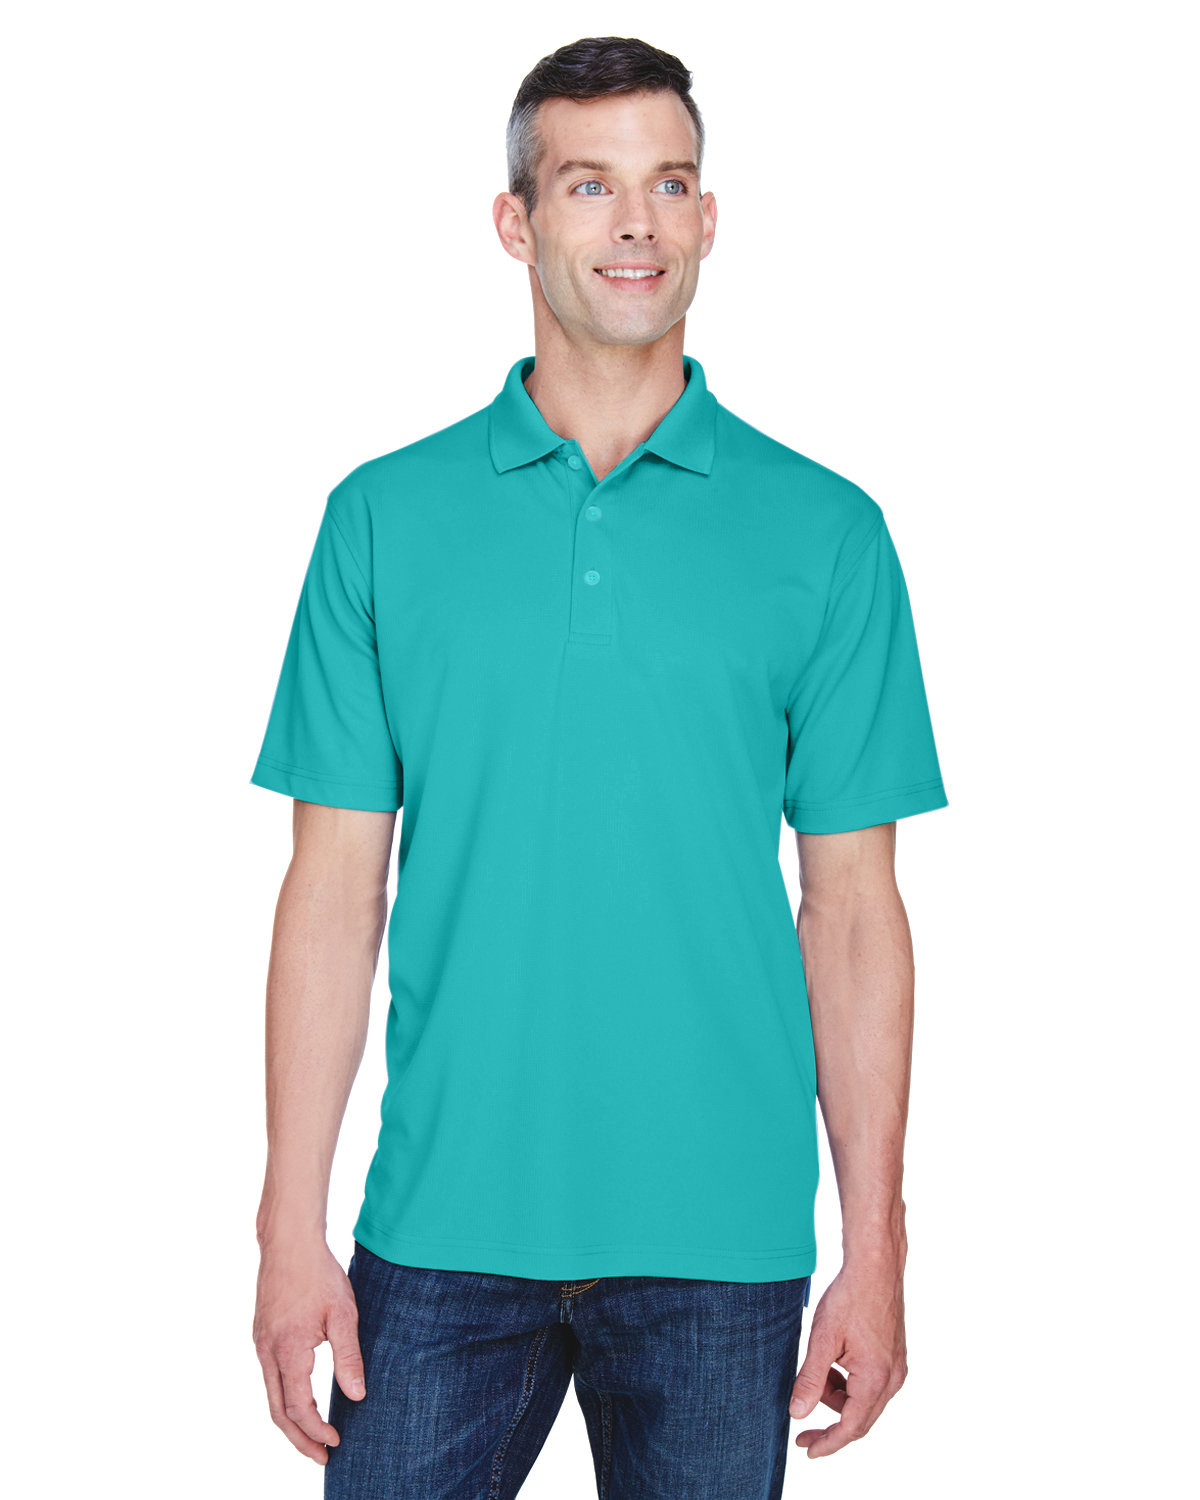 UltraClub Men's Cool & Dry Stain-Release Performance Polo JADE